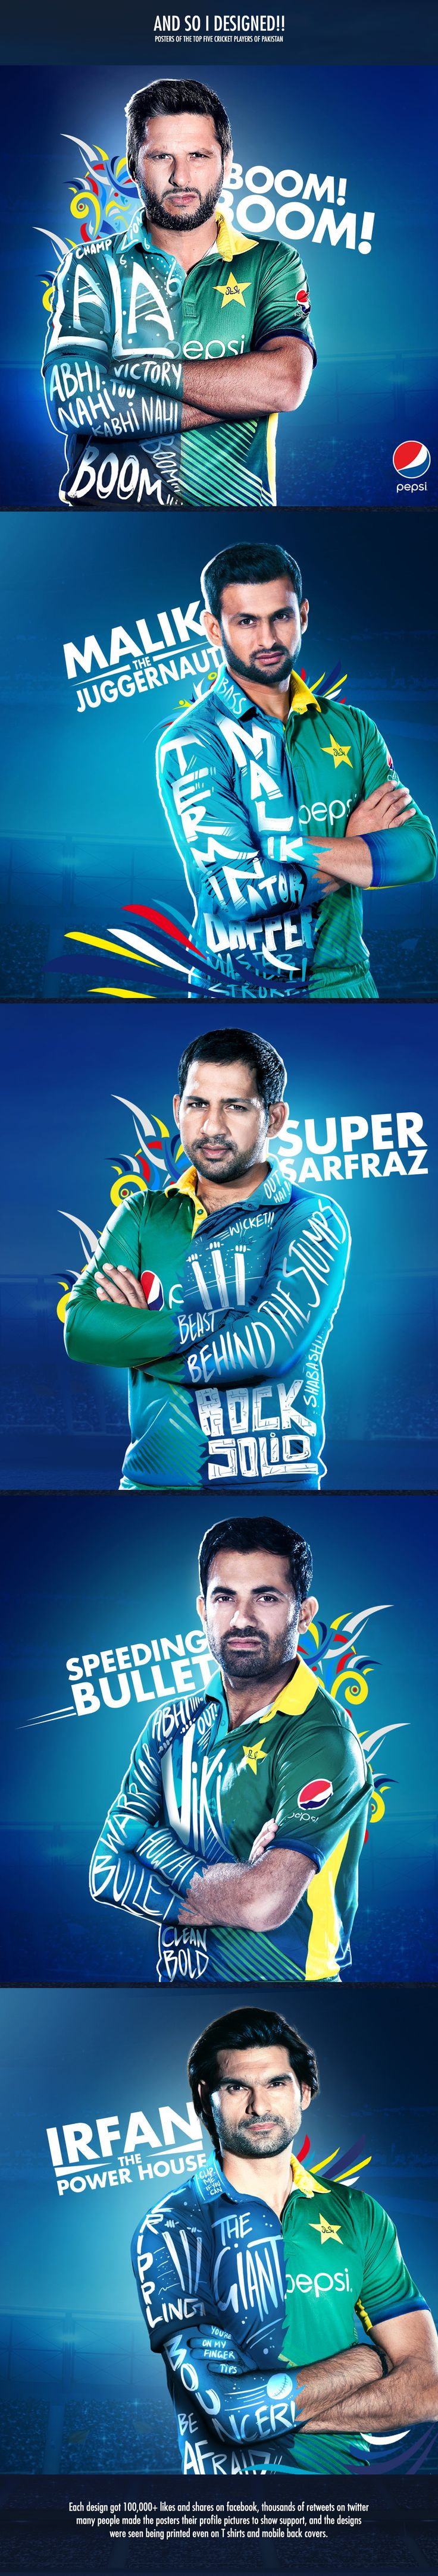 Pepsi Cricket Posters on Behance